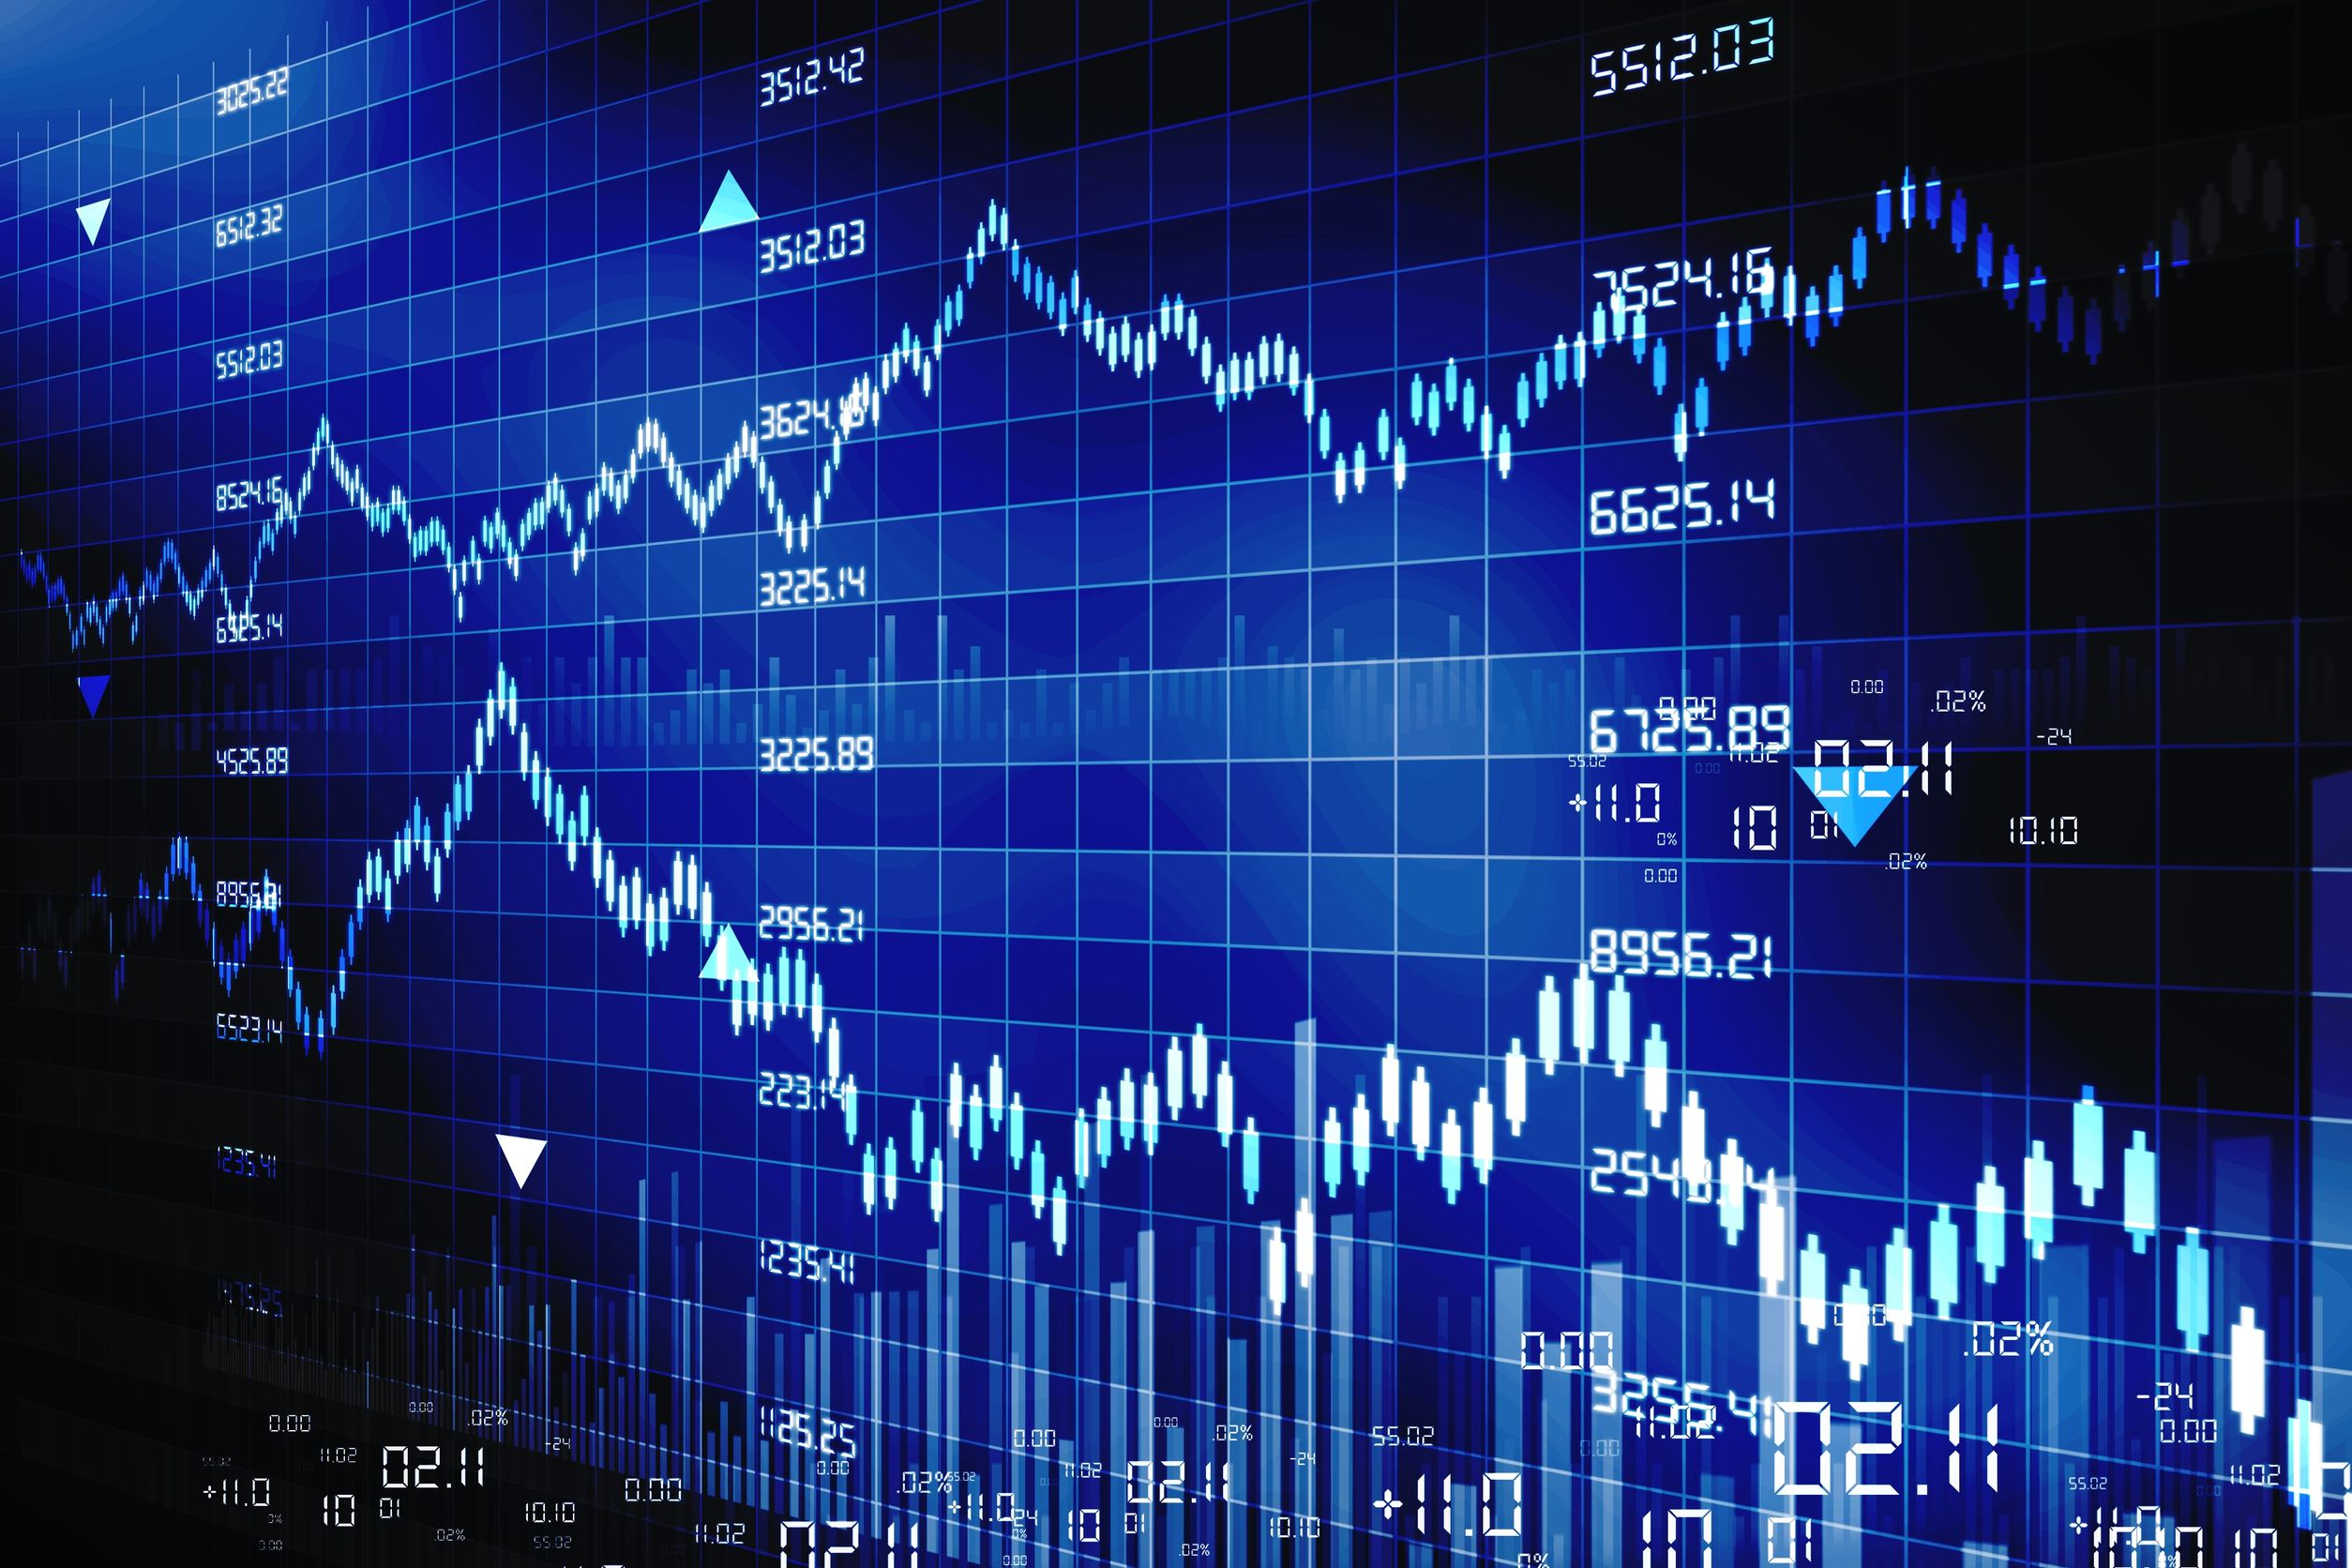 canadian stock market experience meltdown in the volatile high tech stocks Report on business magazine here comes value: 10 canadian bargain stocks  the sugar market in canada is  so is it an oil-field services stock or a tech stock.